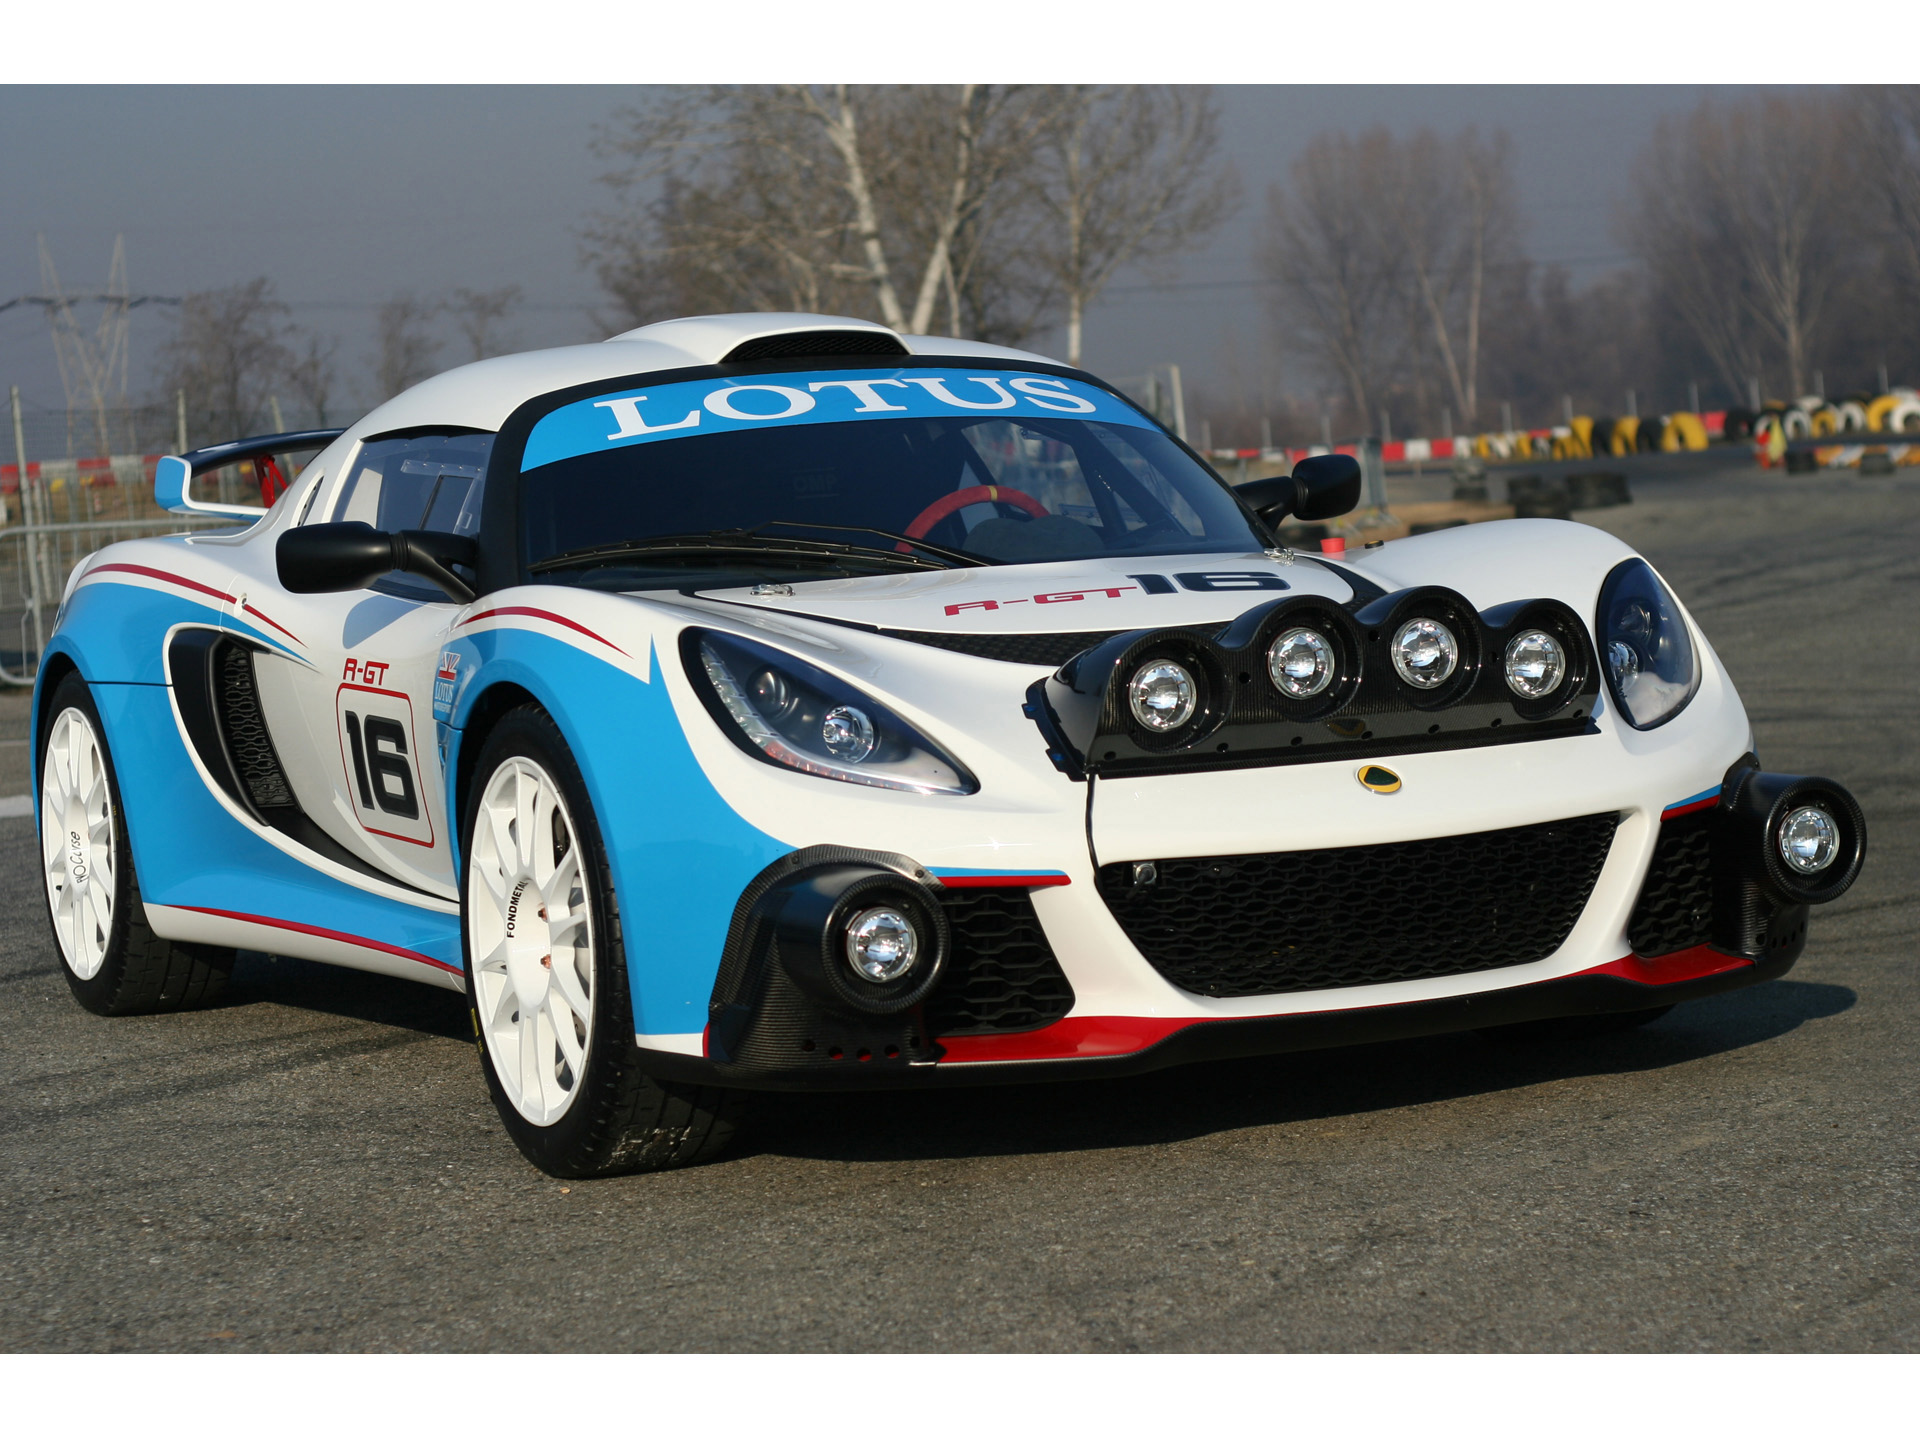 2012 Lotus Exige R-GT News and Information, Research, and History